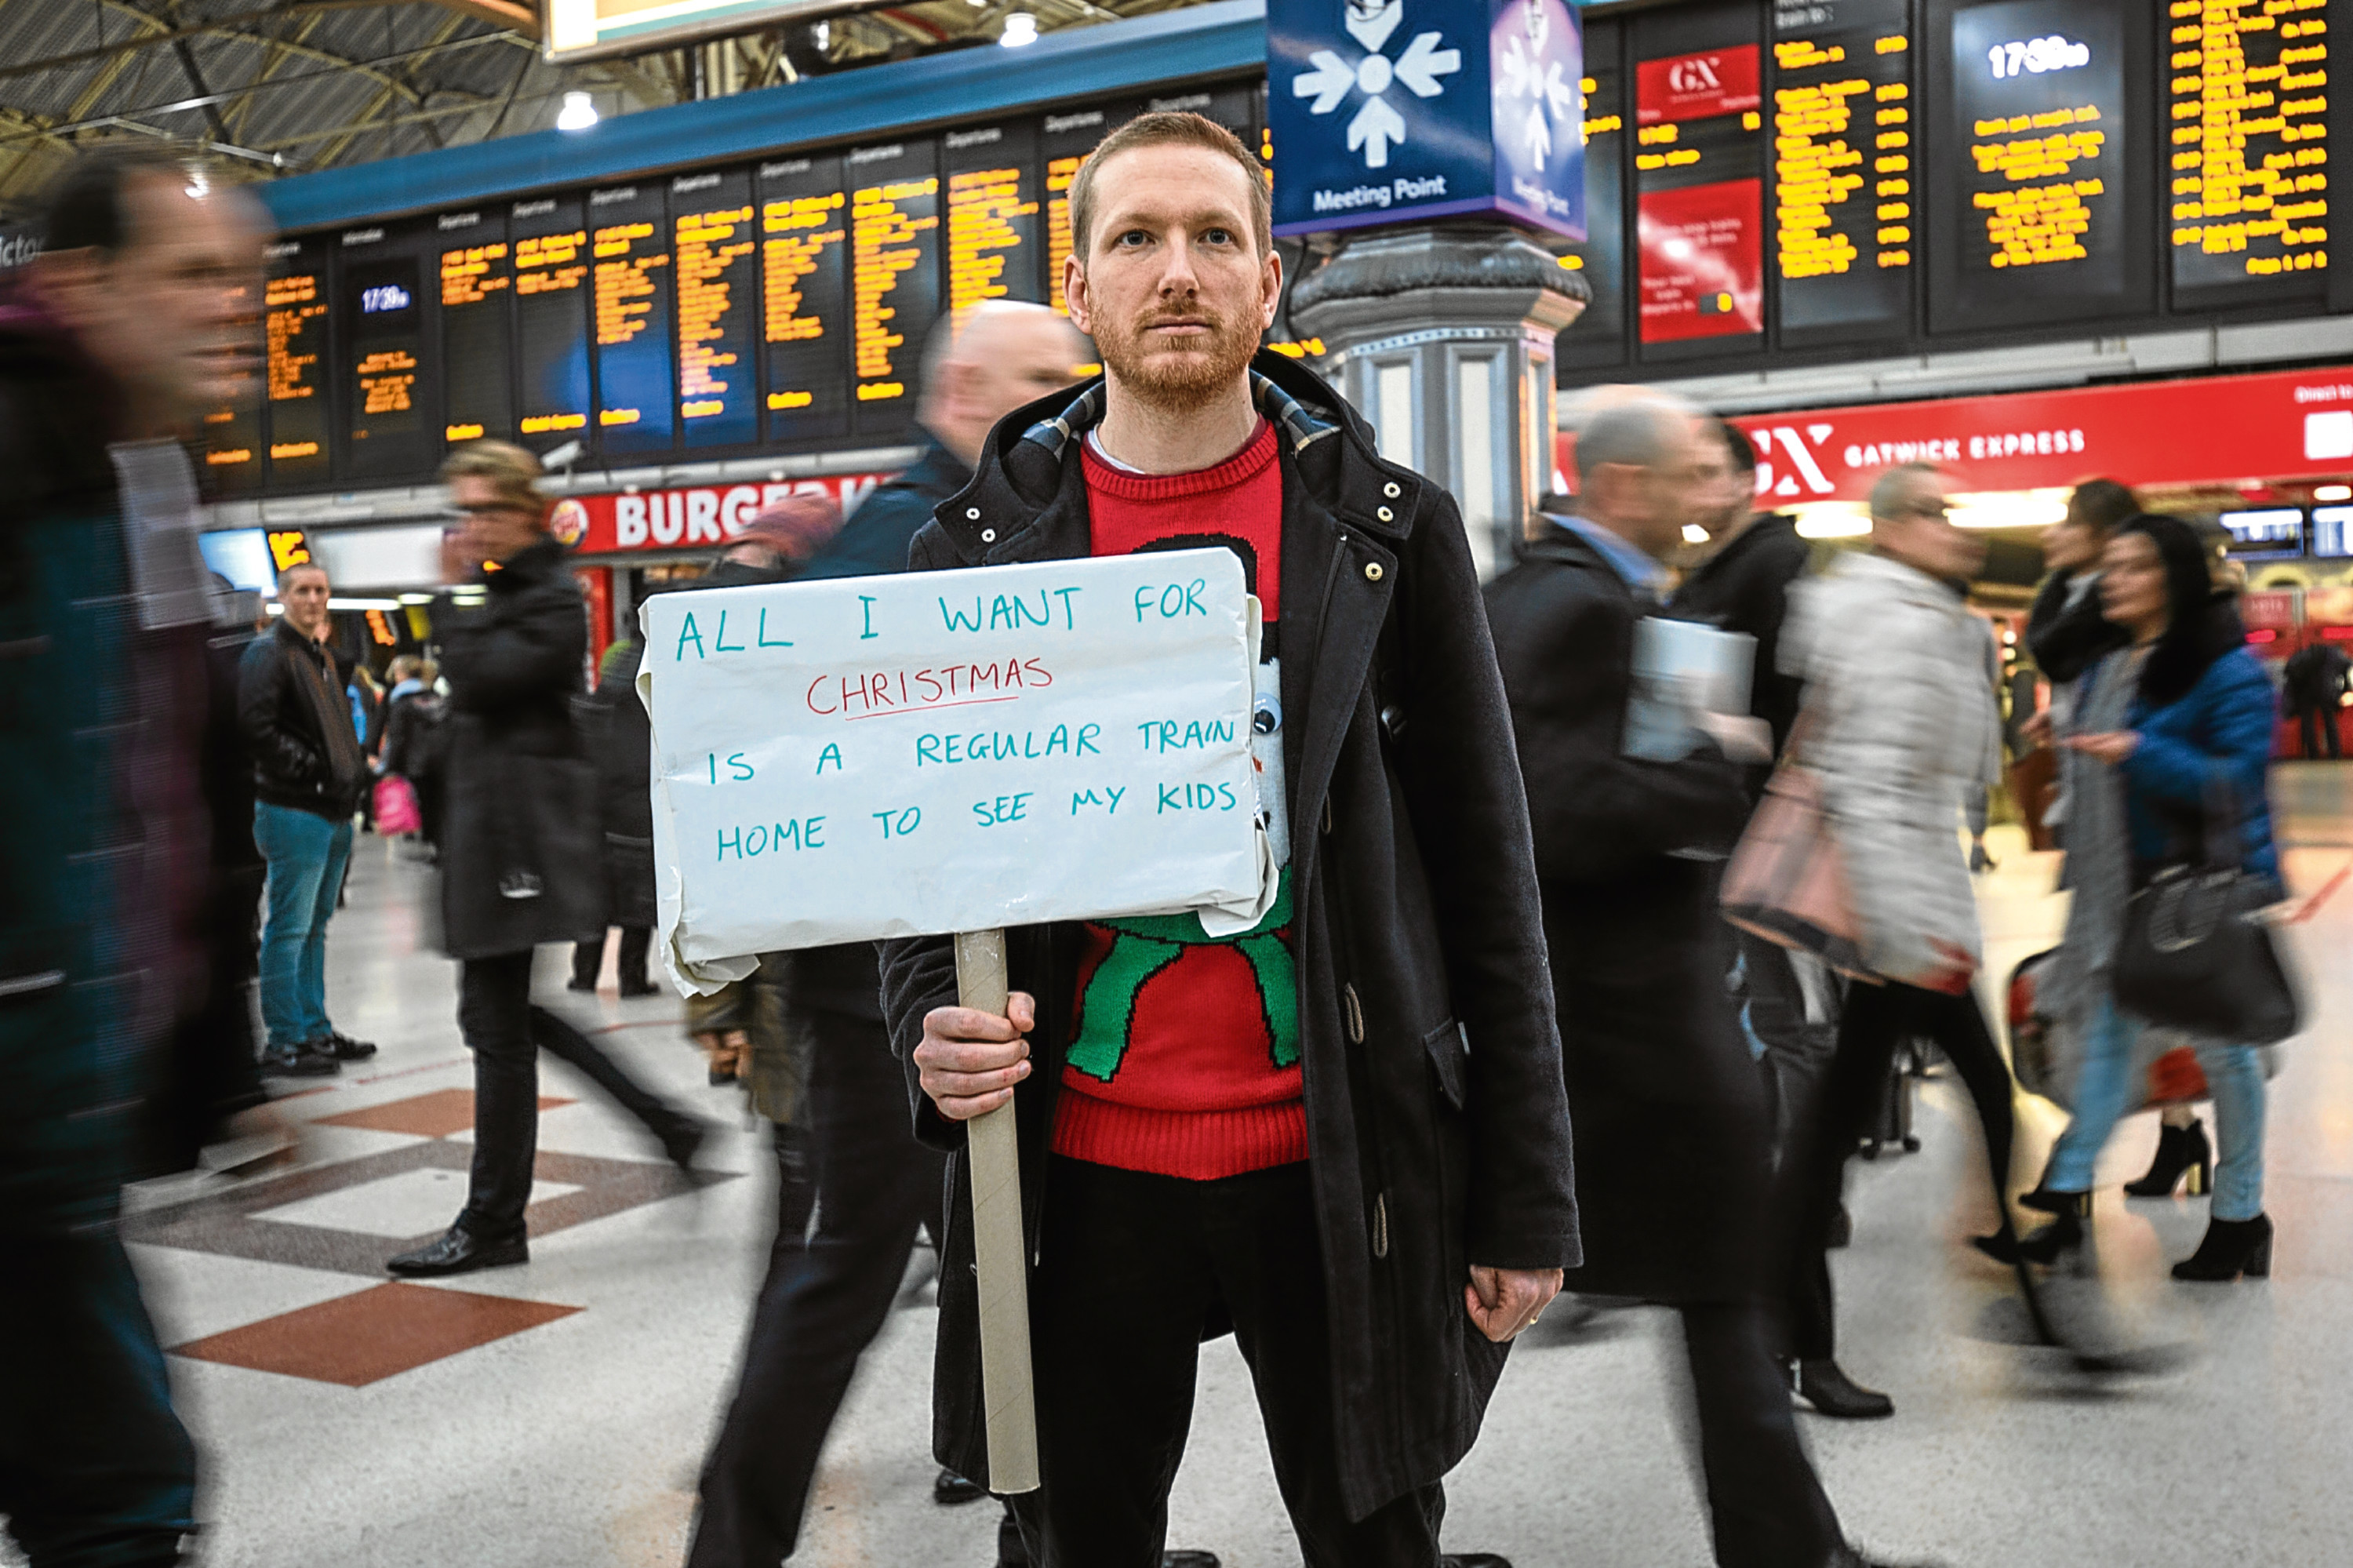 A demonstrator holding a placard joins a protest at Victoria Station against Southern Rail (Jack Taylor/Getty Images)